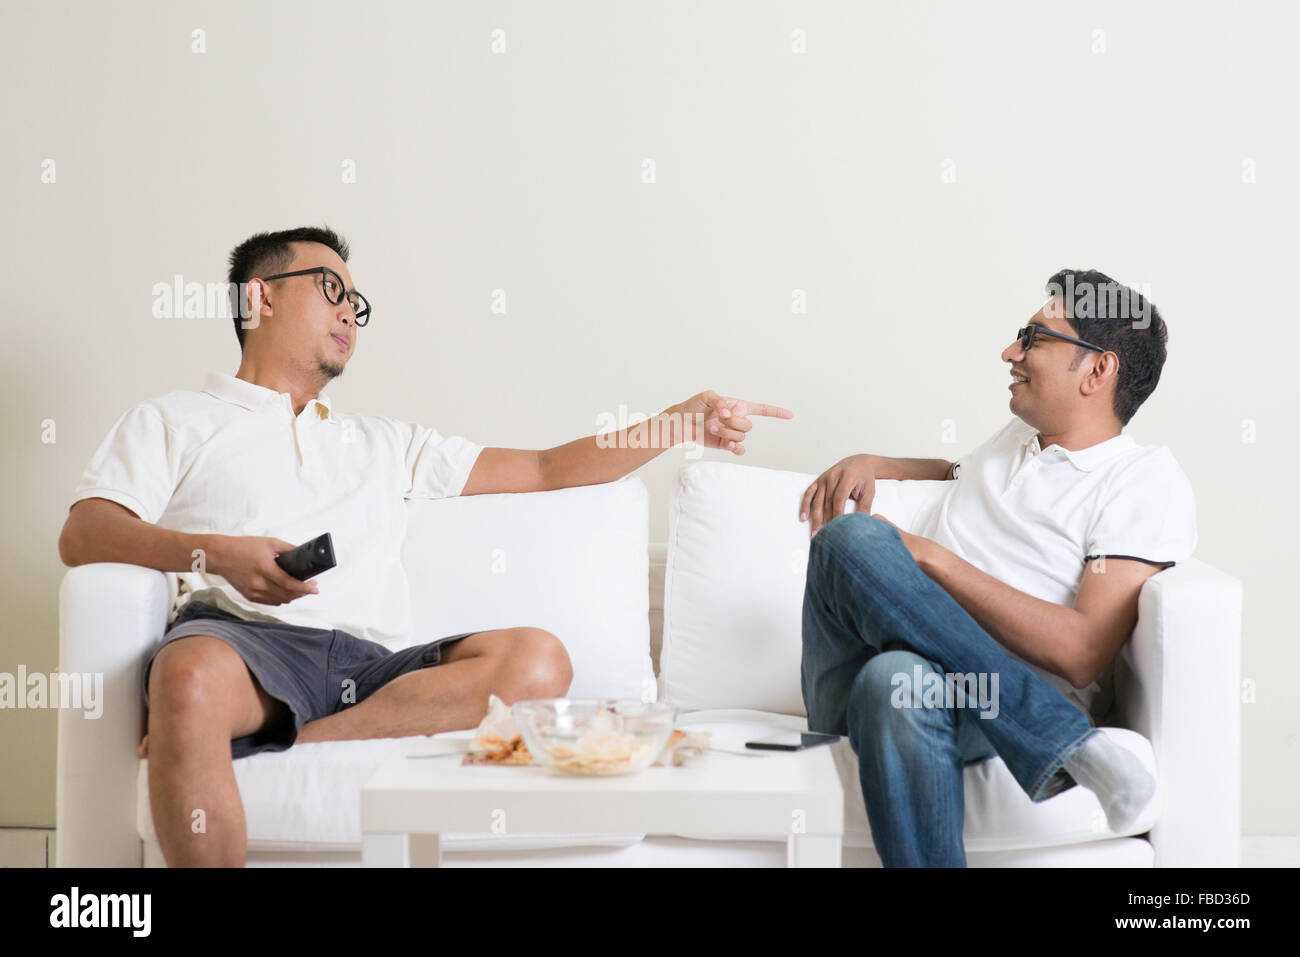 Men arguing. Two middle aged male friend having argument at home. Multiracial people friendship. - Stock Image